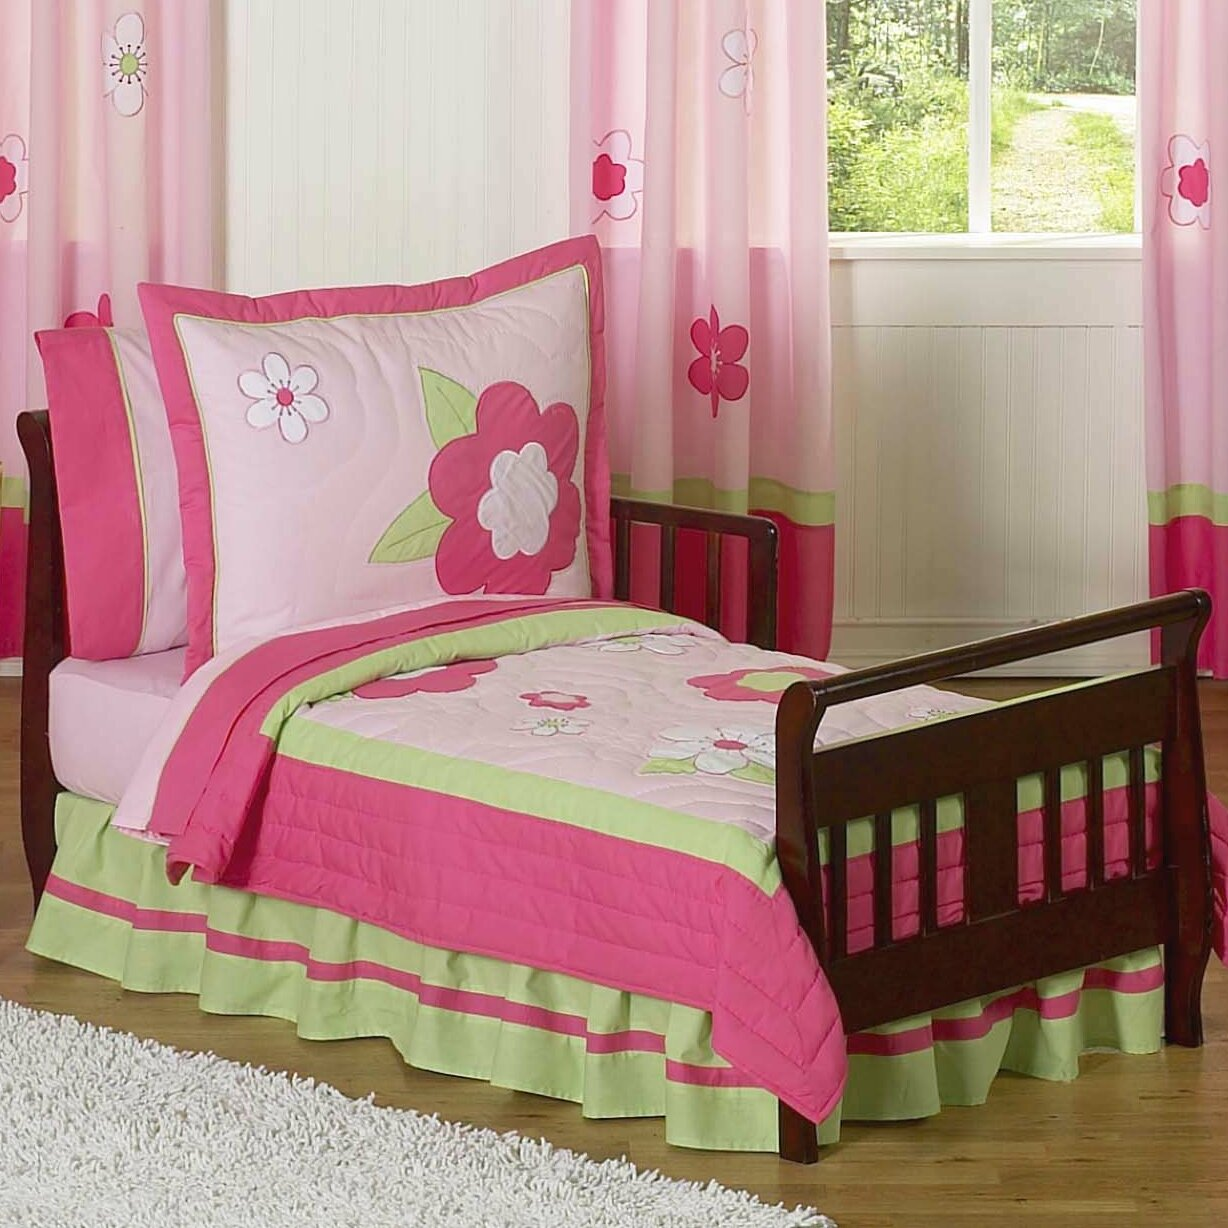 Flower 5 Piece Toddler Bedding Set